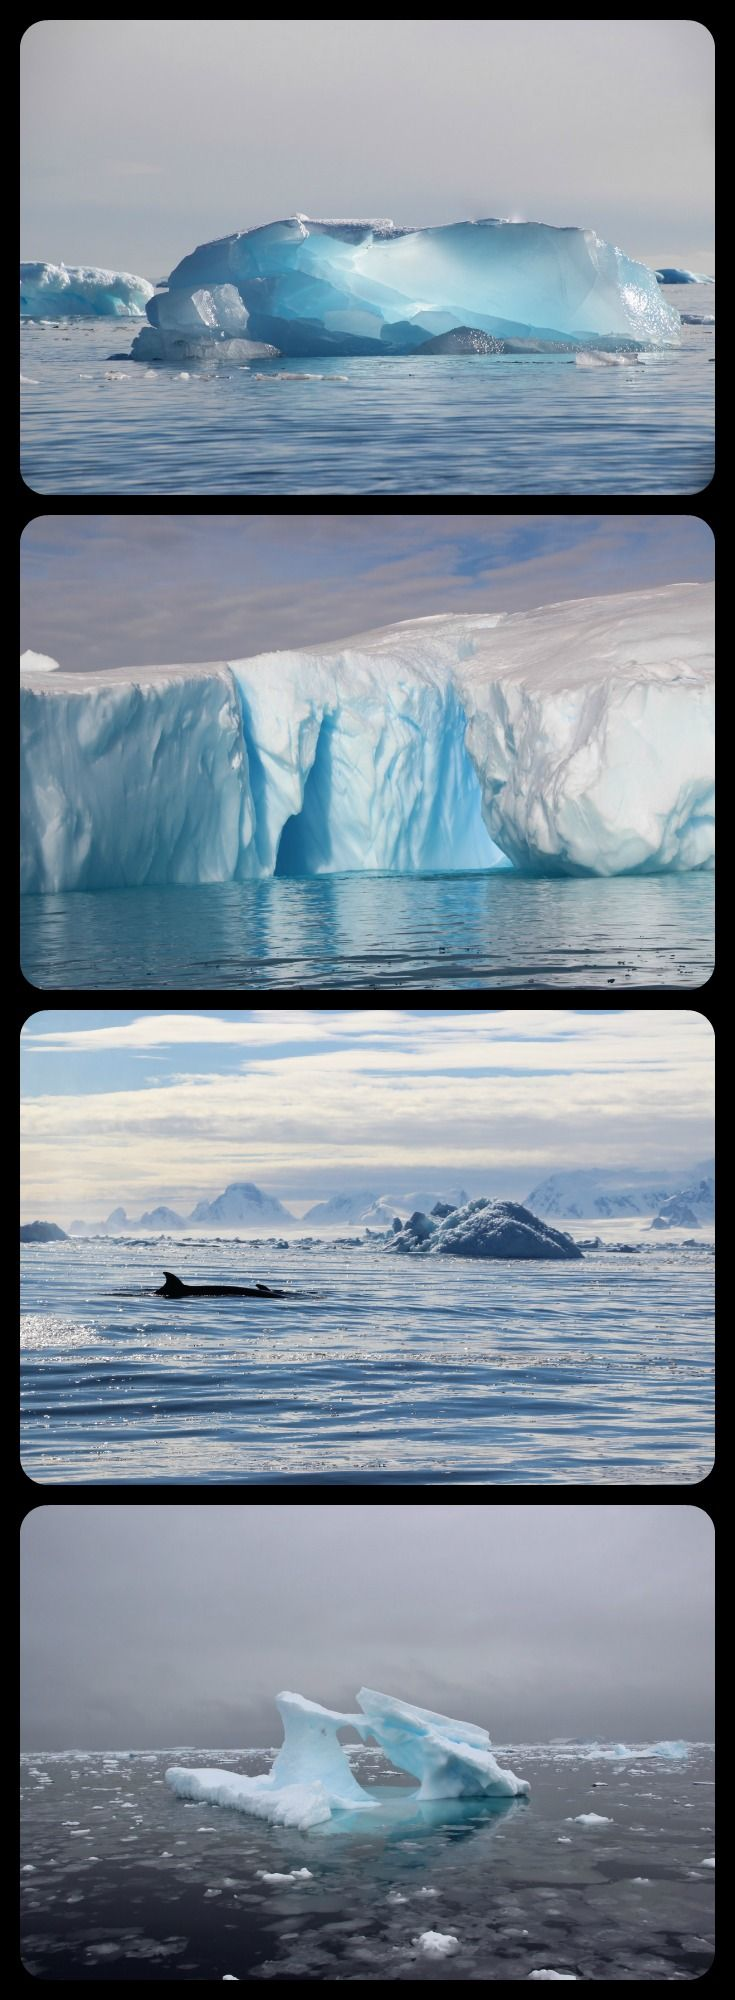 Unforgettable blue icebergs in Antarctica... an expedition cruise to this part of the world really is a travel dream come true.